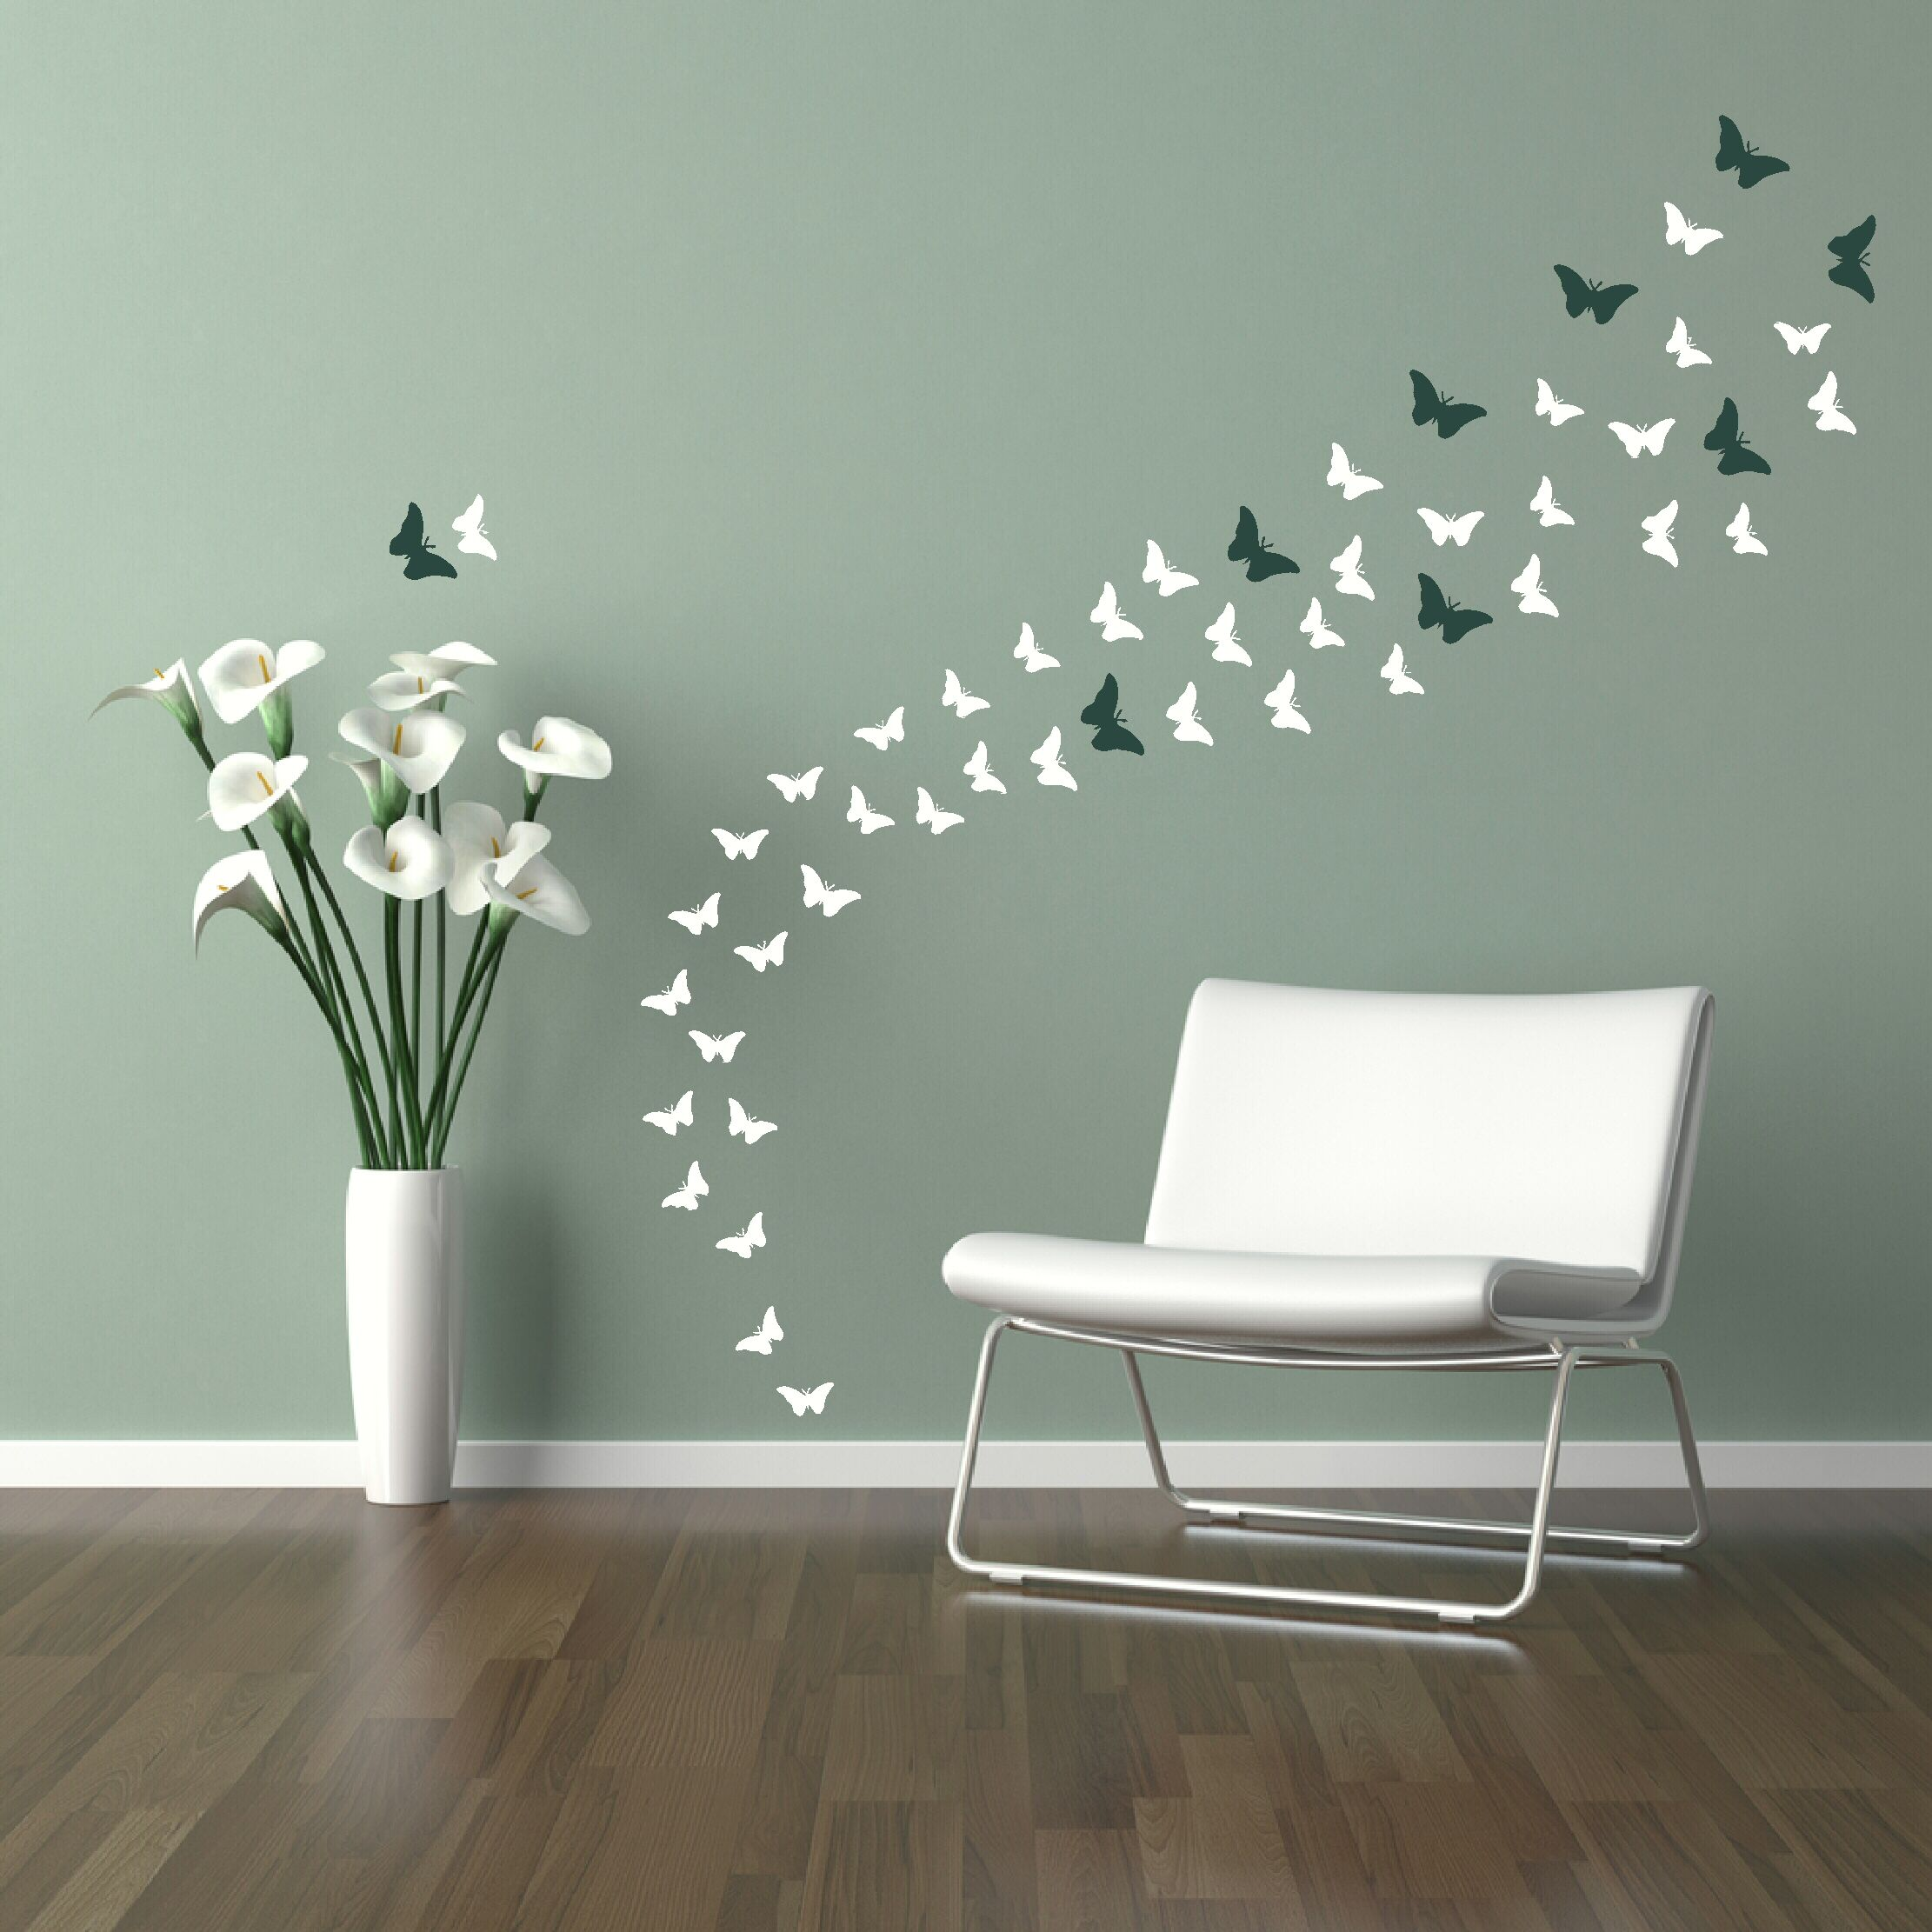 3d butterfly wall stckers wall decors wall art wall.htm details about bathroom bedroom kitchen wall sticker decal art kids  bedroom kitchen wall sticker decal art